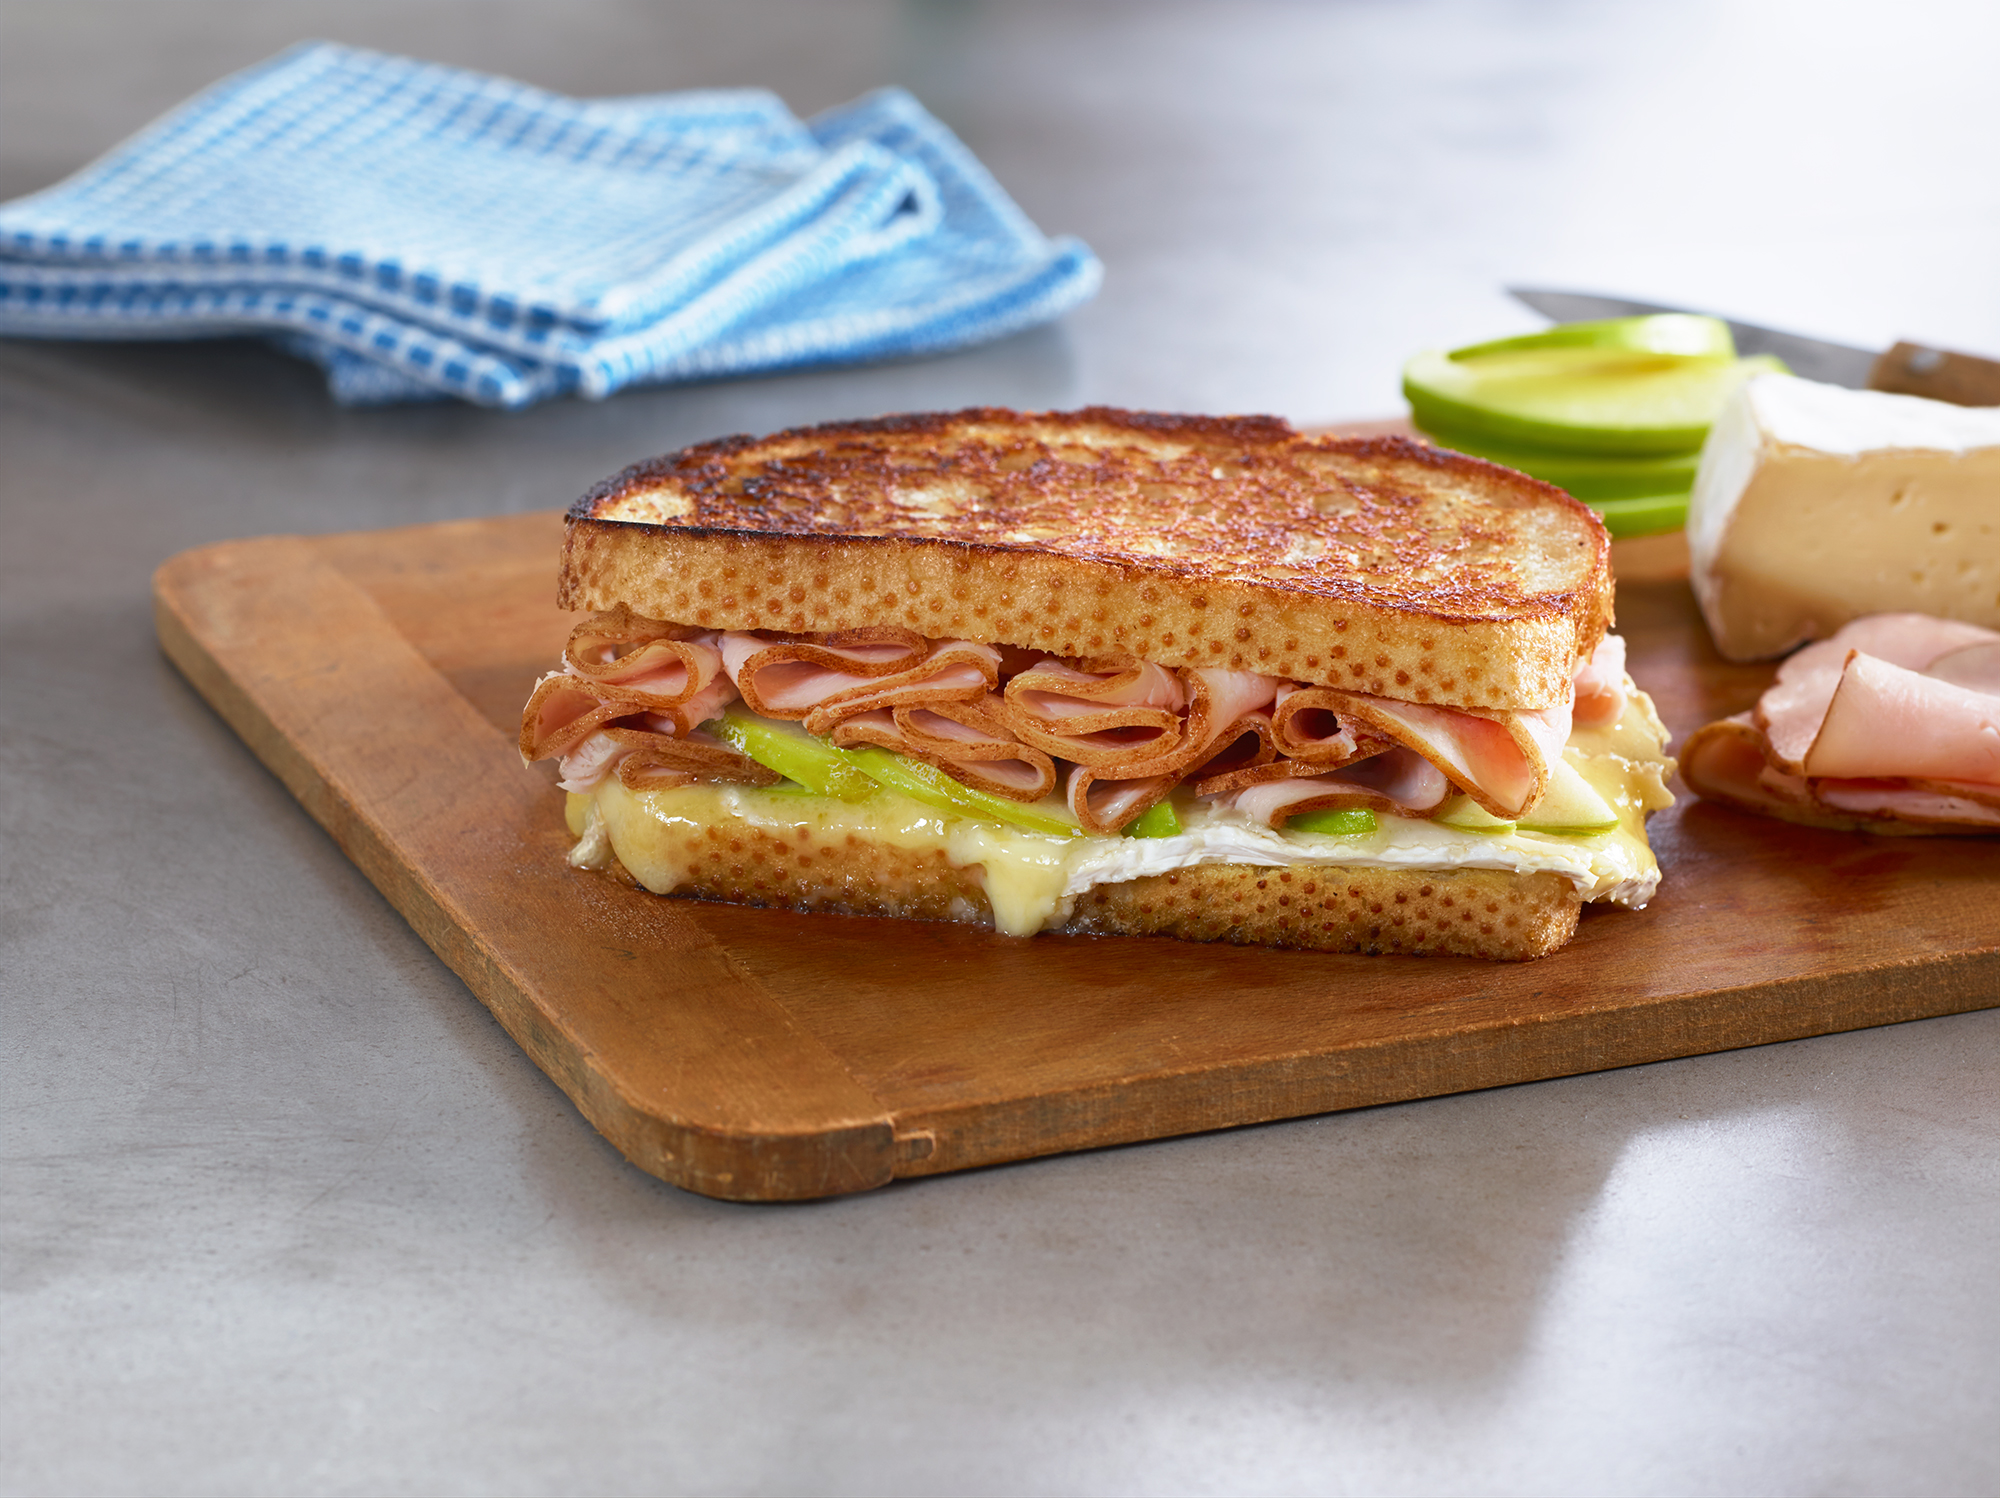 CWR_HoneyTurkey_Brie&GreenApple_SandwichMelt